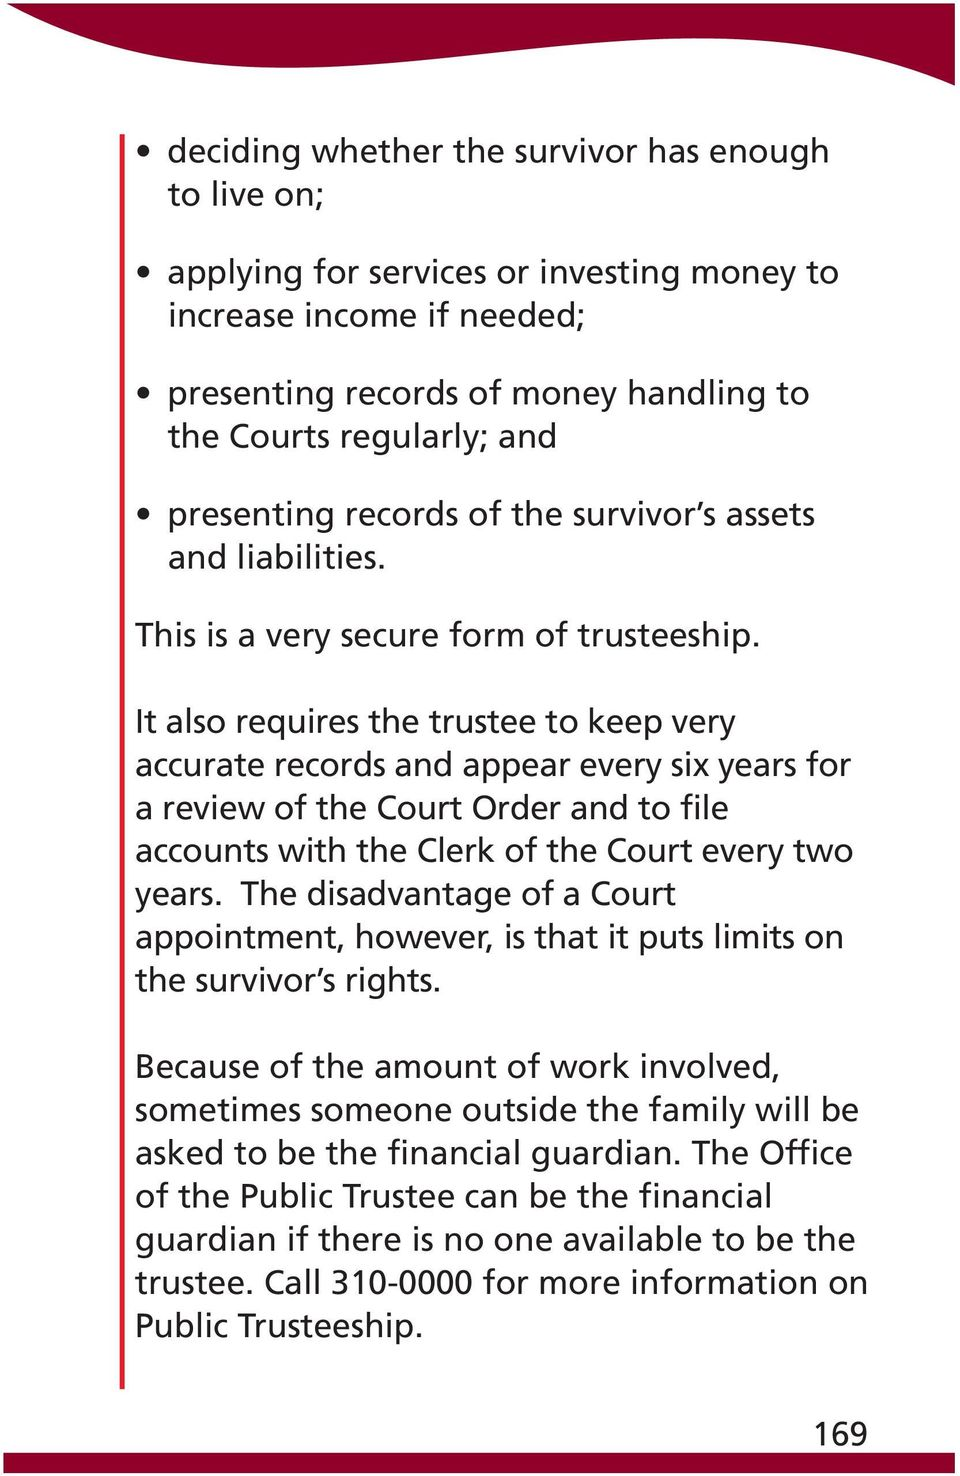 It also requires the trustee to keep very accurate records and appear every six years for a review of the Court Order and to file accounts with the Clerk of the Court every two years.